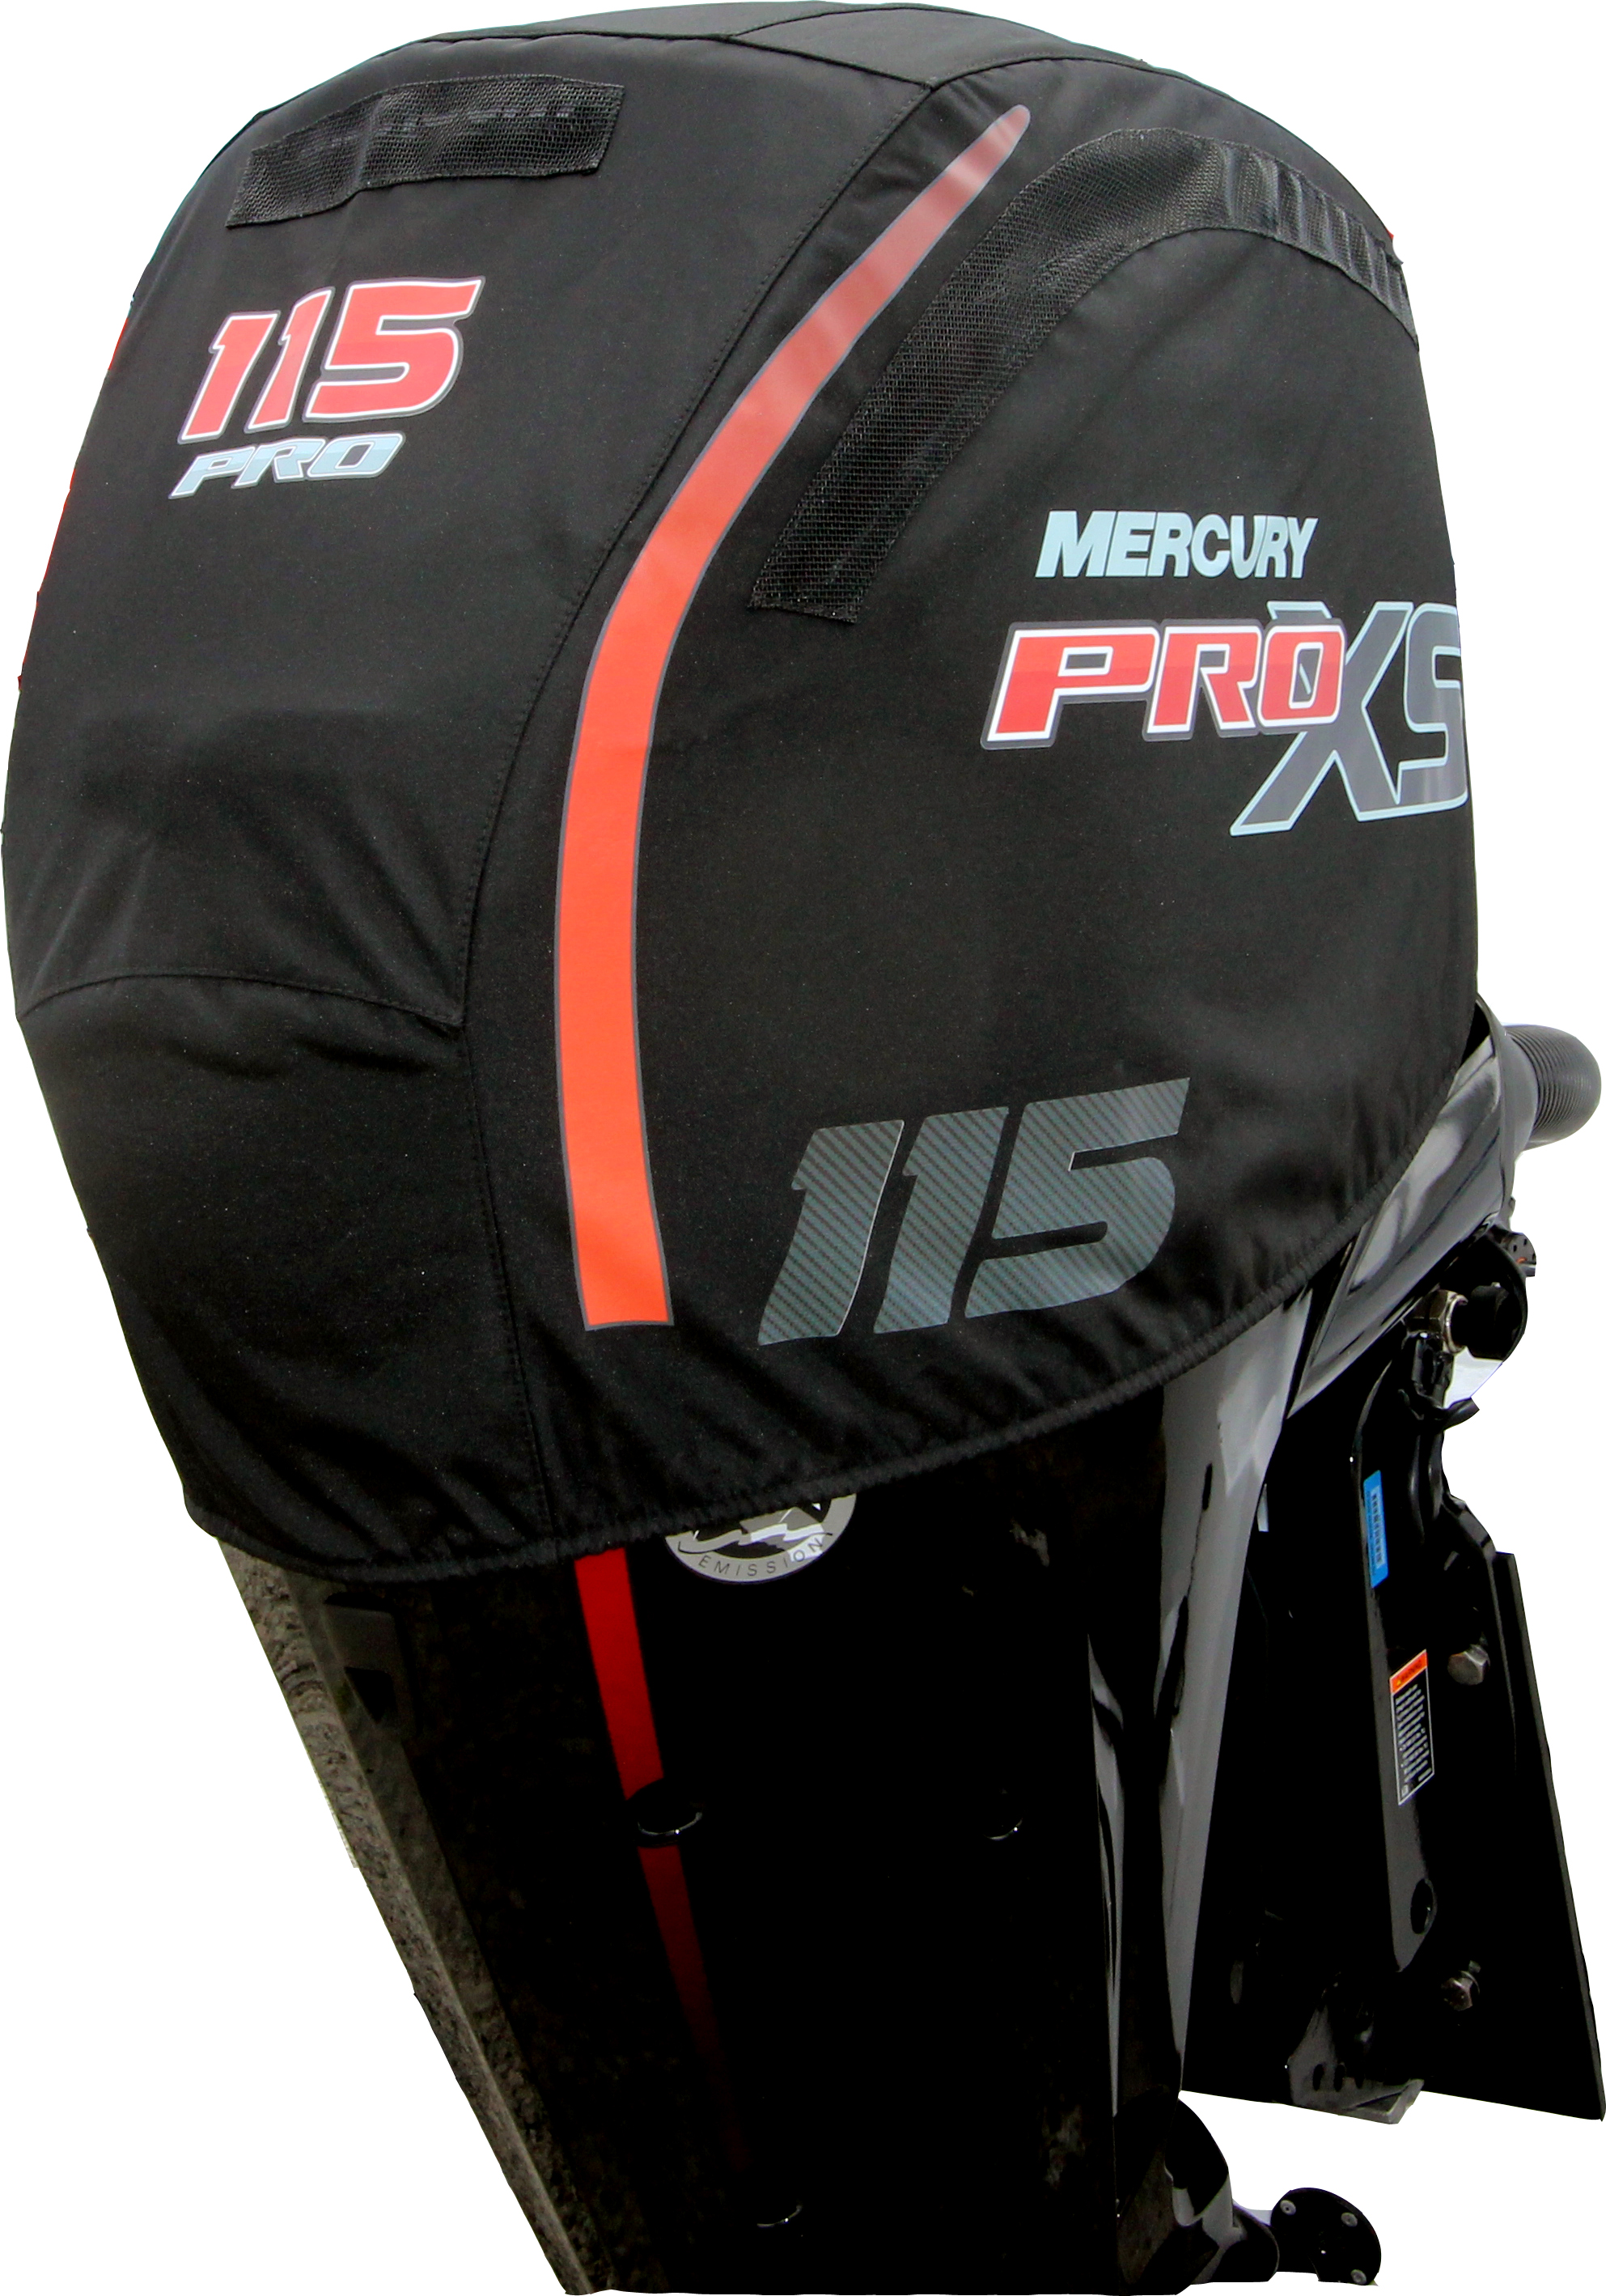 Pro Xs on Mercury Outboard Cover